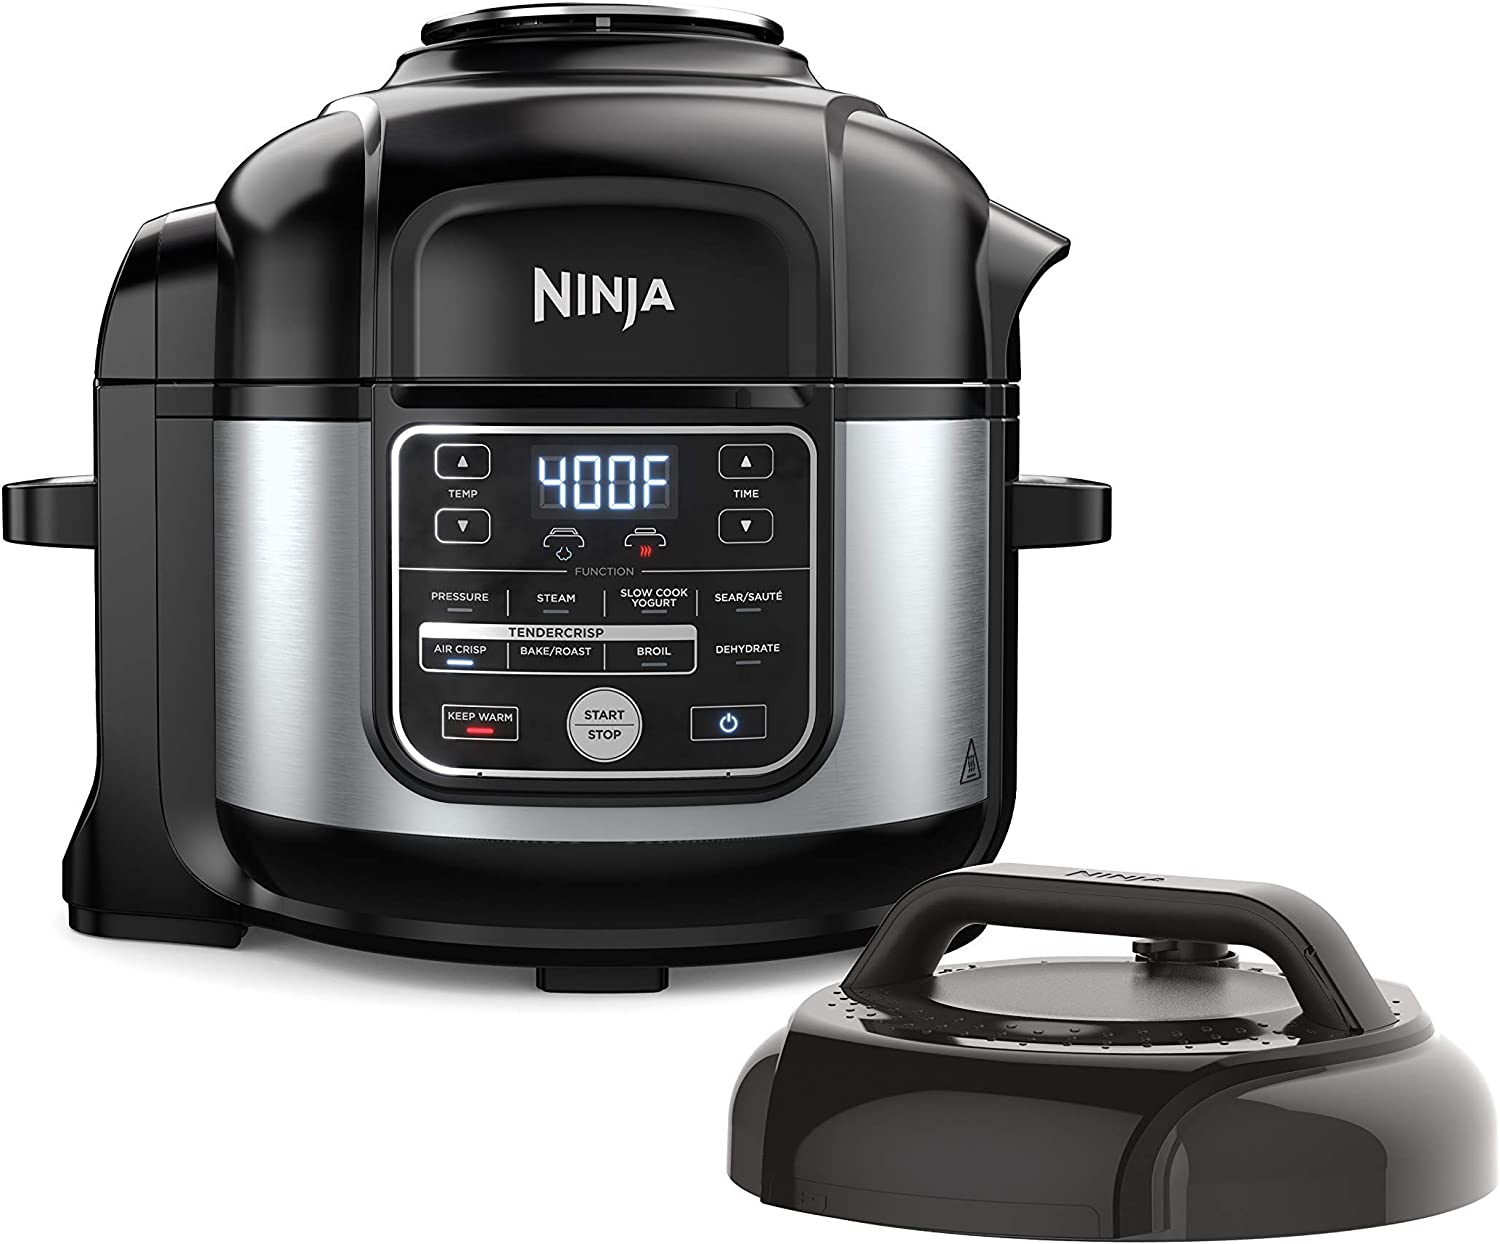 Ninja OS301 Foodi 10-in-1 Pressure Cooker and Air Fryer with Nesting Broil Rack, 6.5-Quart Capacity, and a Stainless Finish (Renewed)